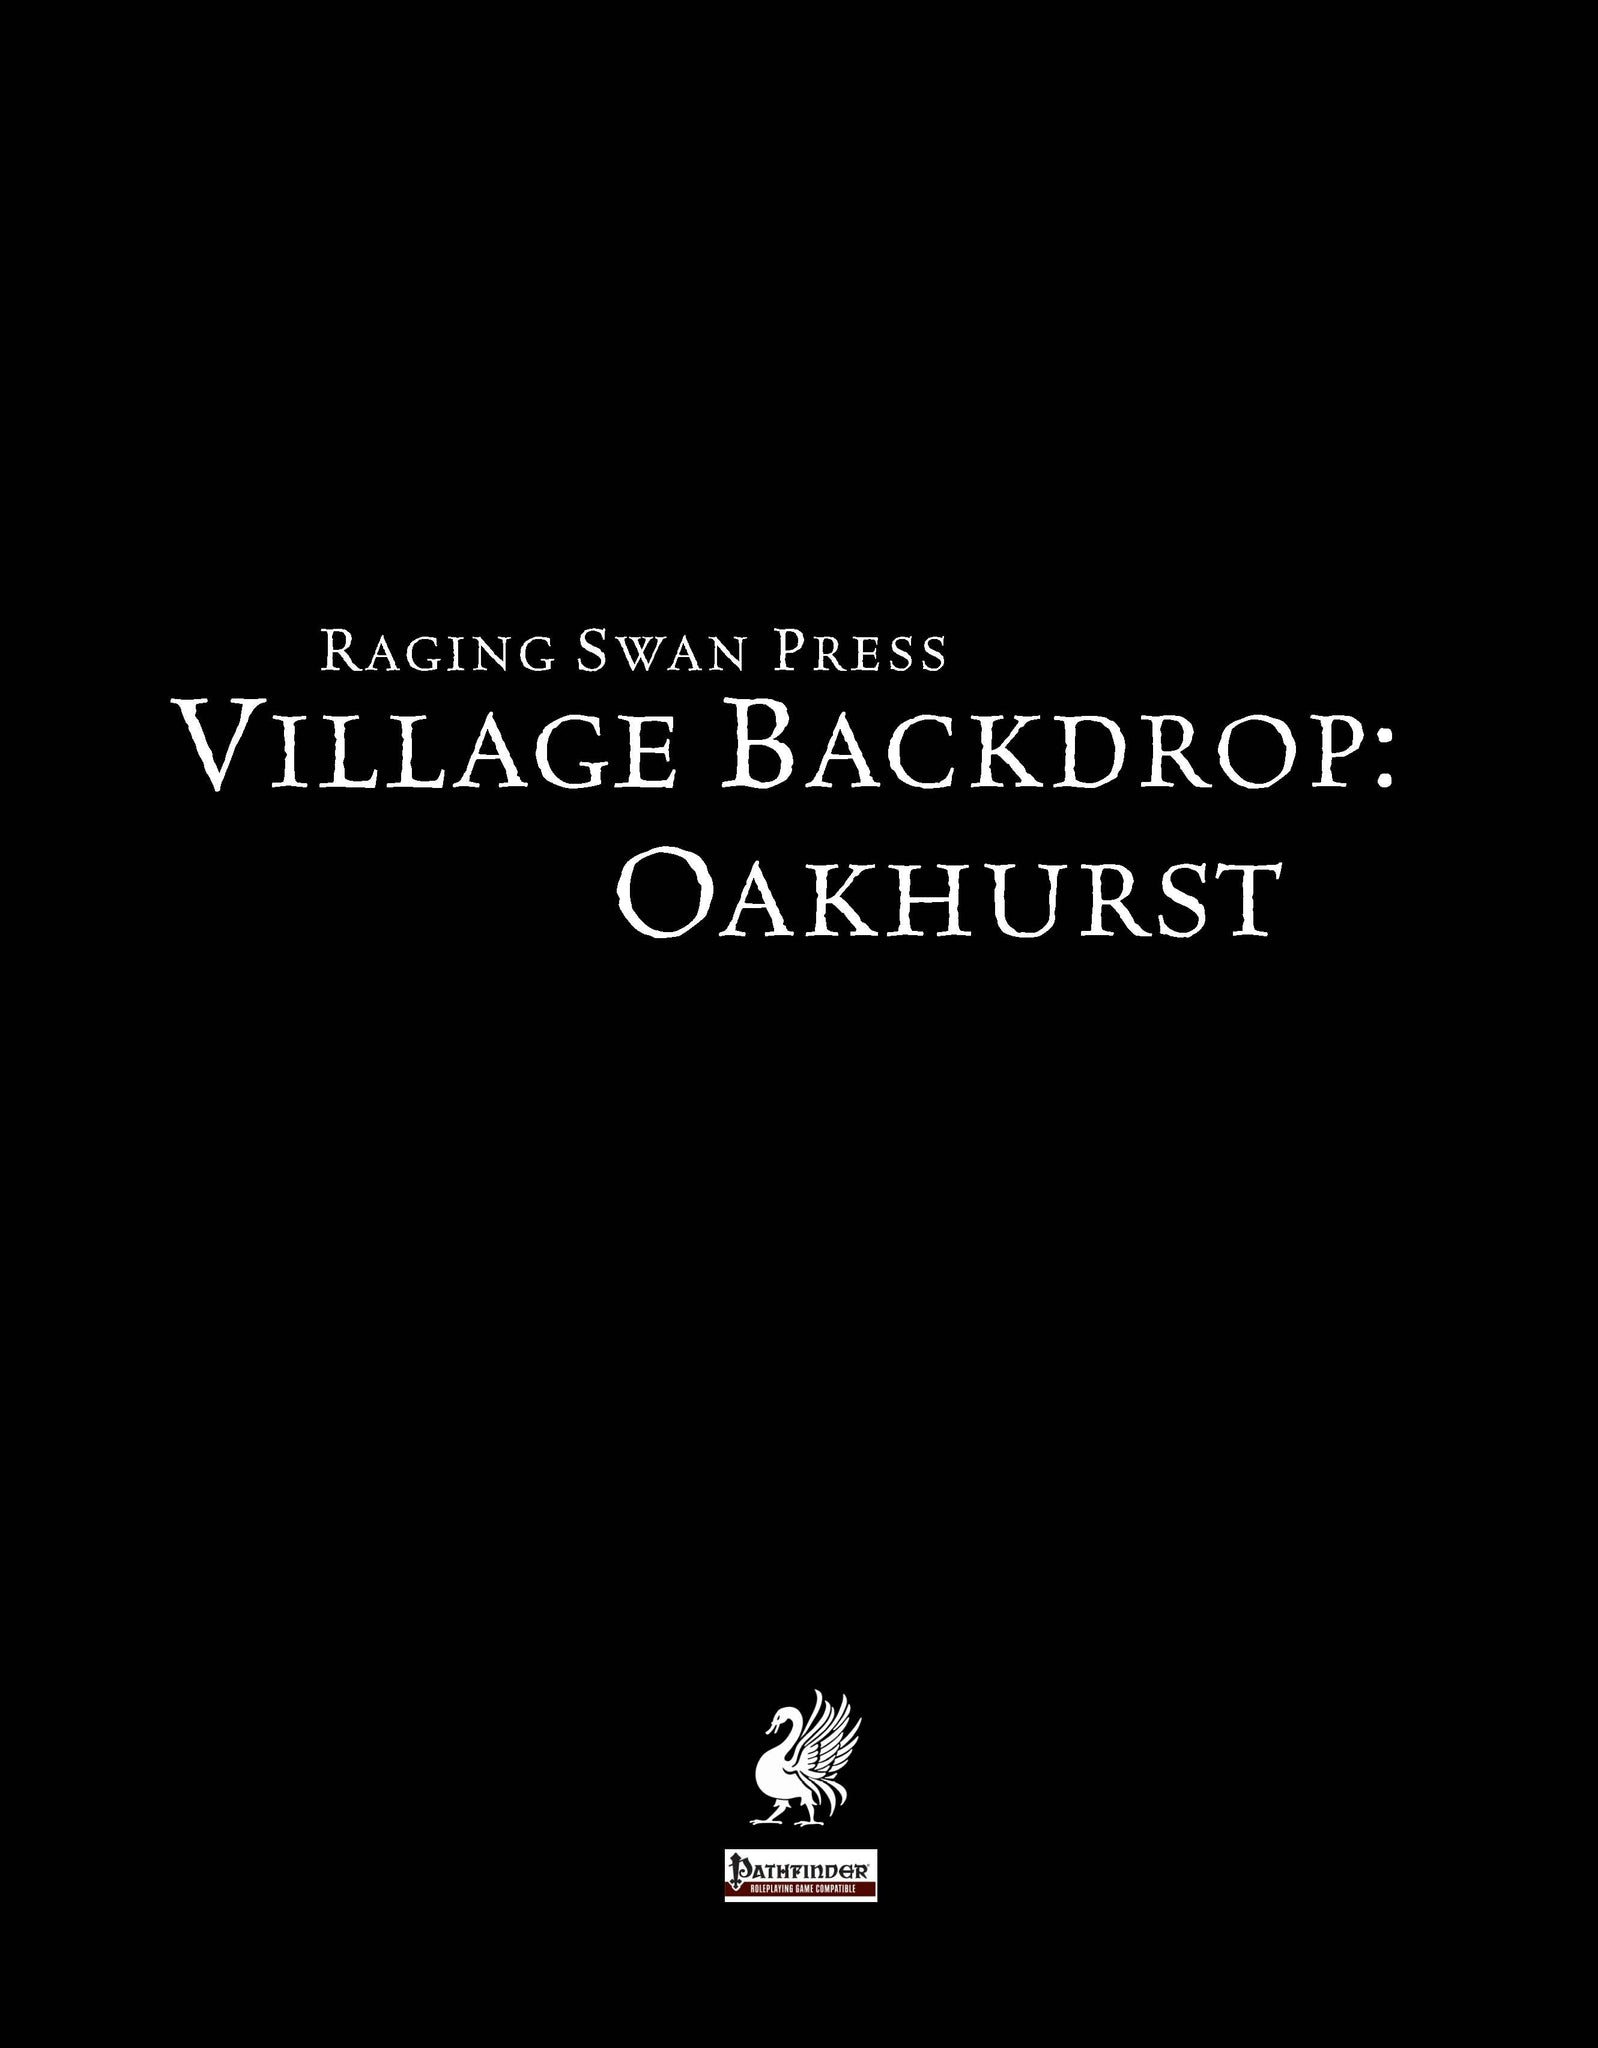 Village Backdrop: Oakhurst